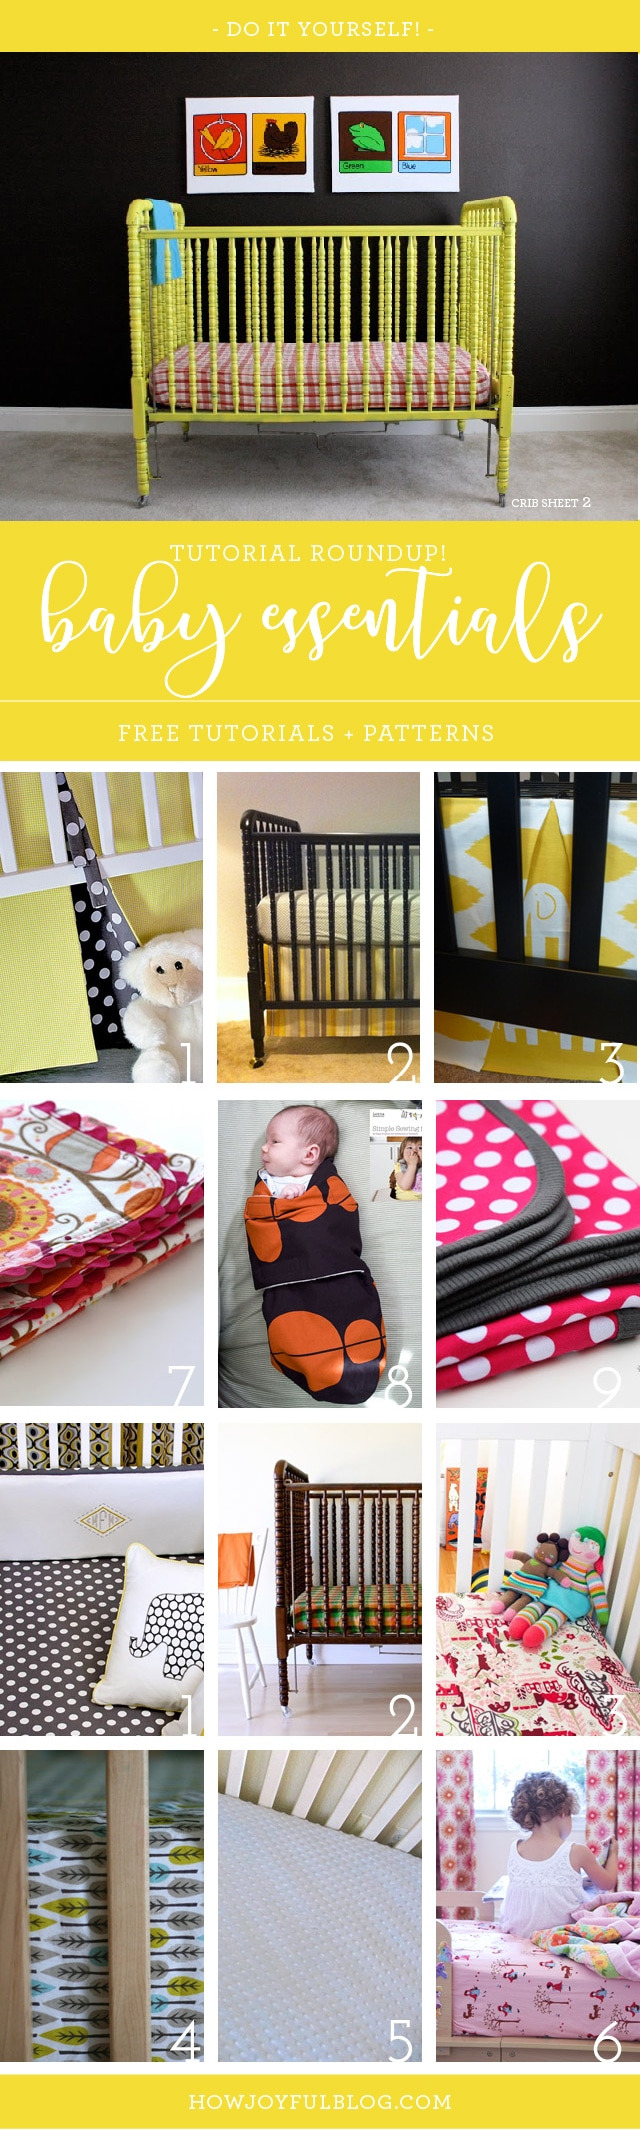 Custom Crib Bedding Online Beautiful How to Sew A Crib Bedding and Nursery Essentials Sewing